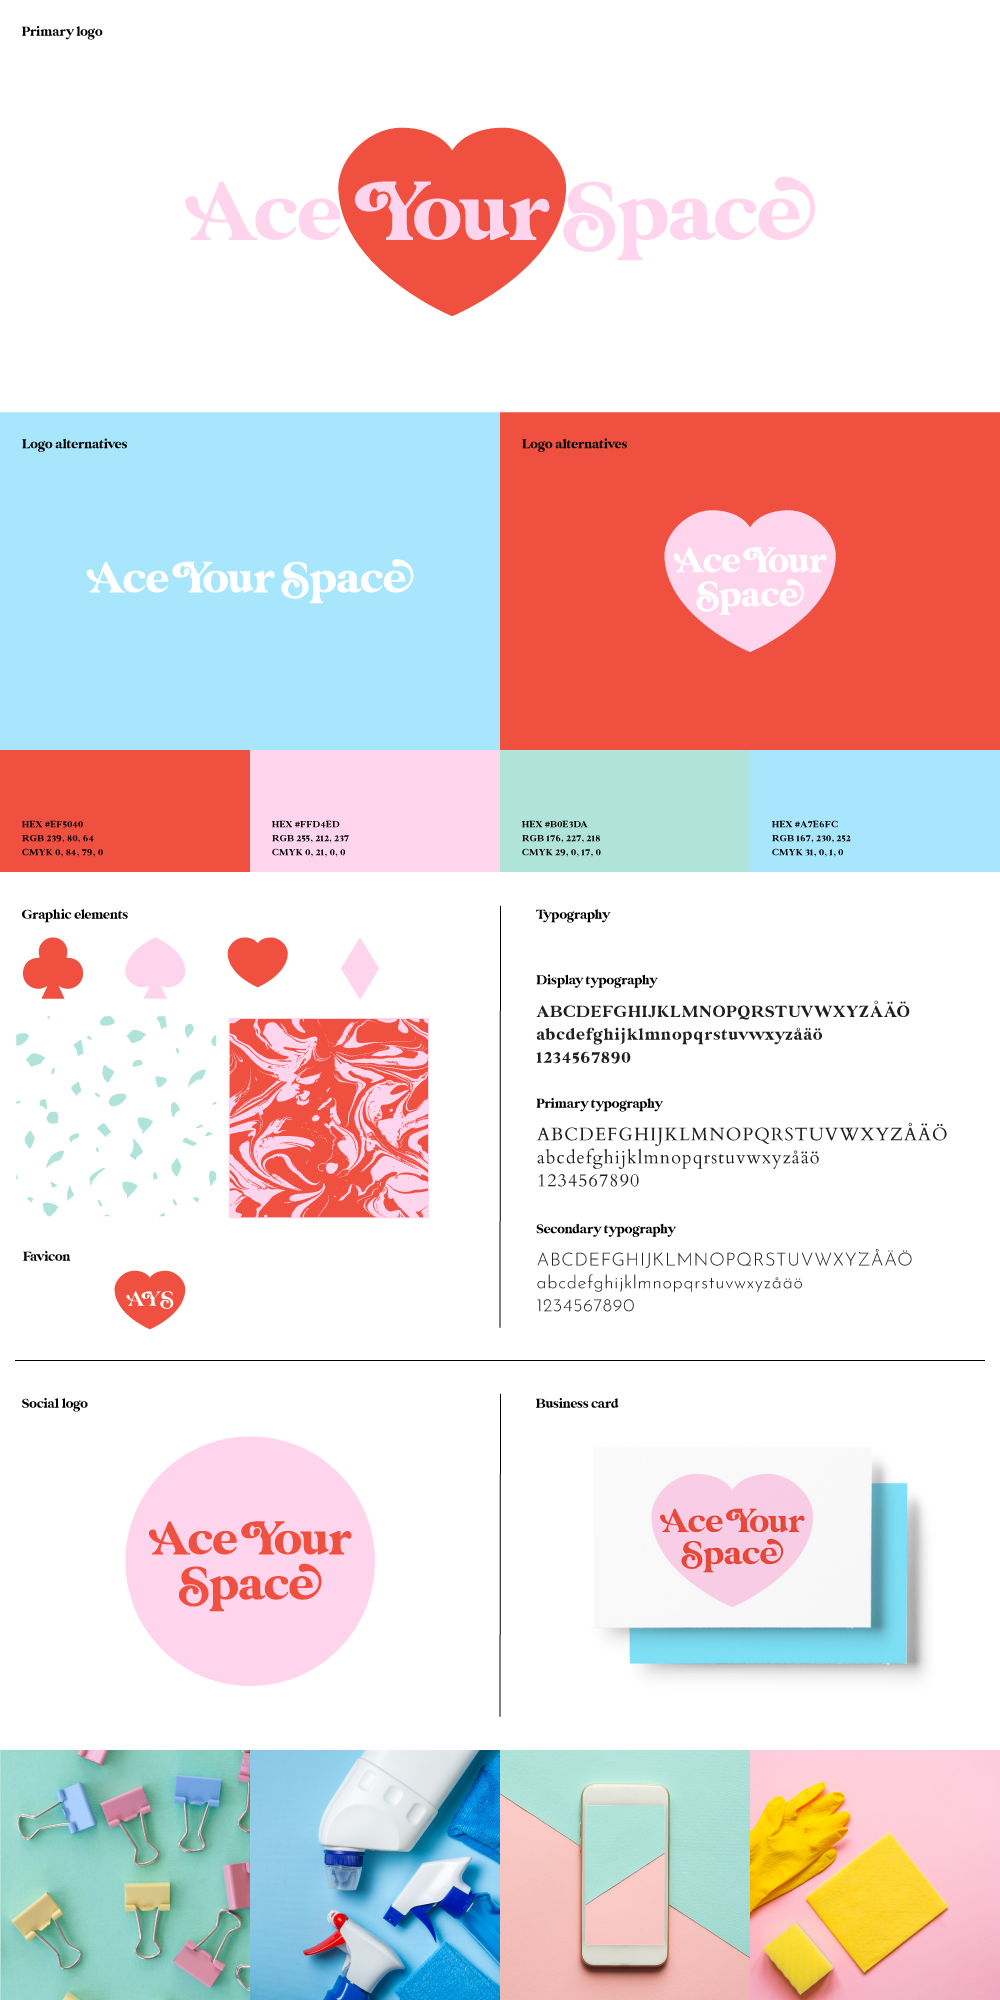 Ace-Your-Space-Brand-Identity